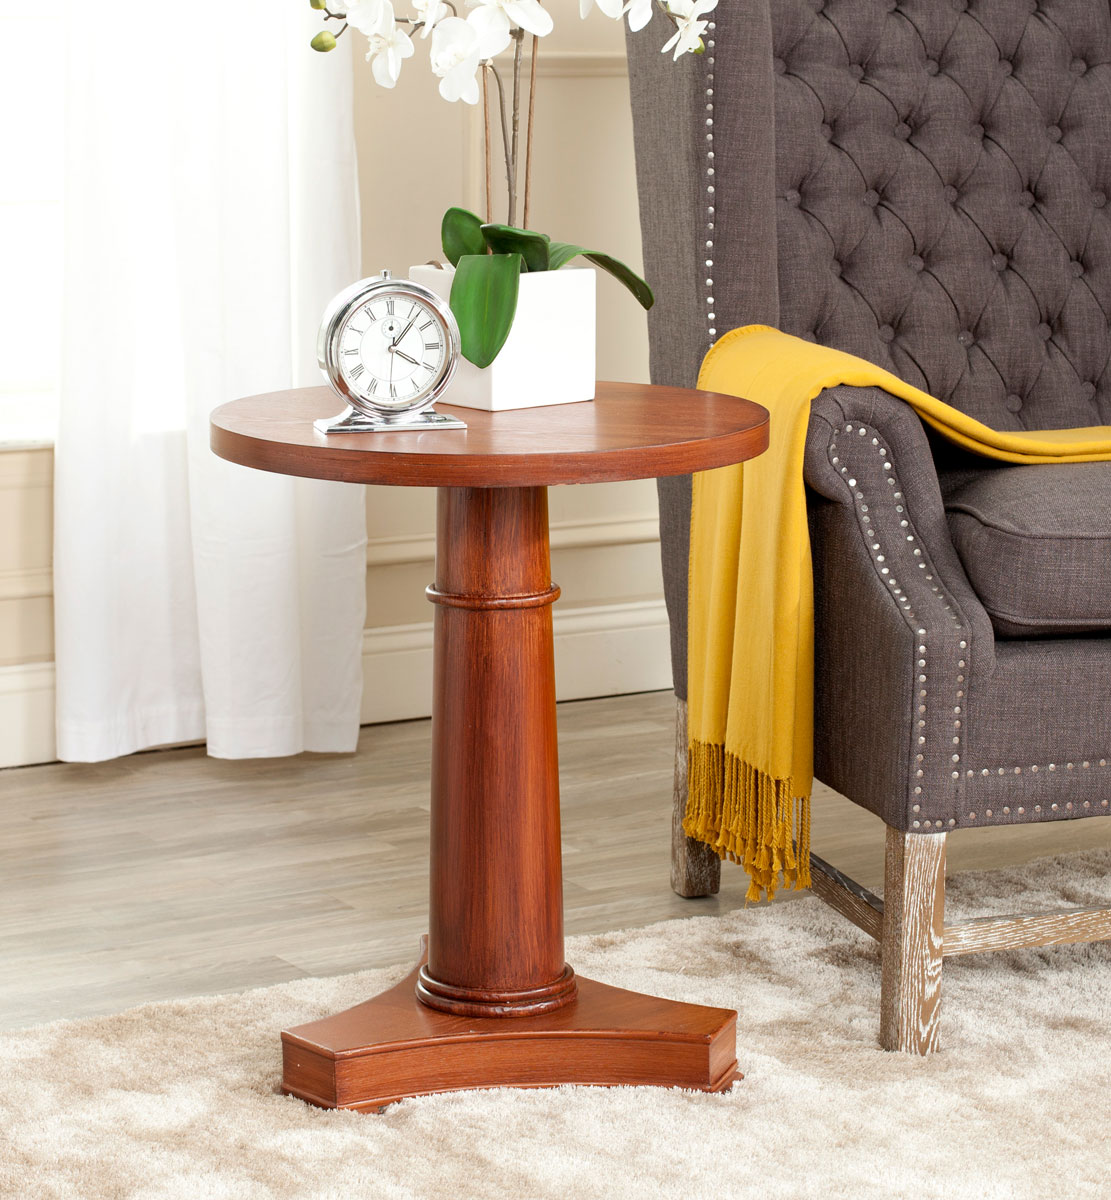 79653337a95f Crafted with fir wood in a warm brown finish with detailed baluster base